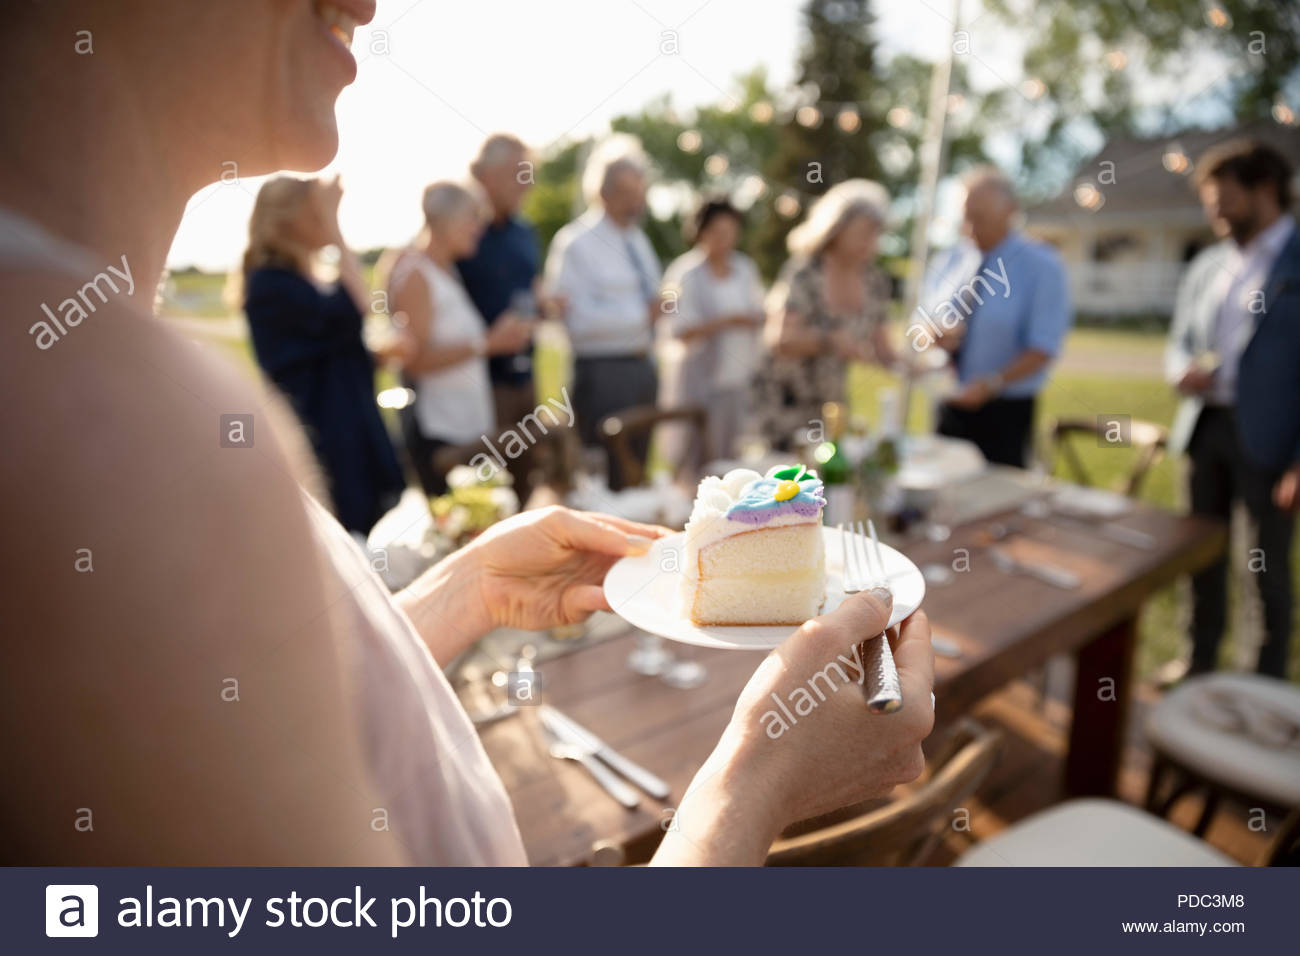 Woman eating cake, celebrating at sunny garden party with friends - Stock Image